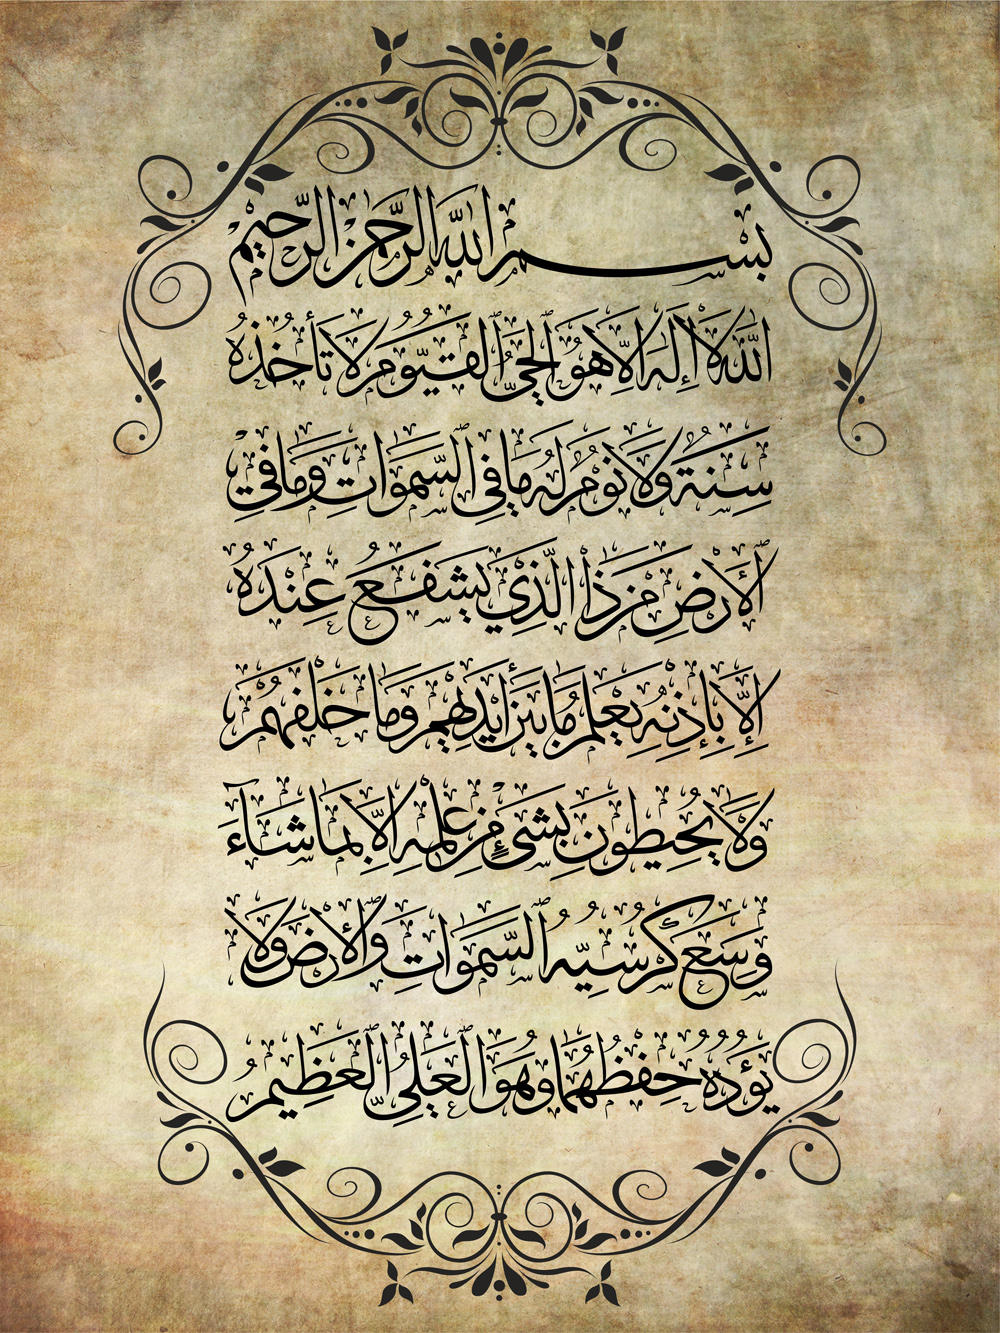 Ayat al koussi free vectors by shaheeed on deviantart Calligraphy ayat